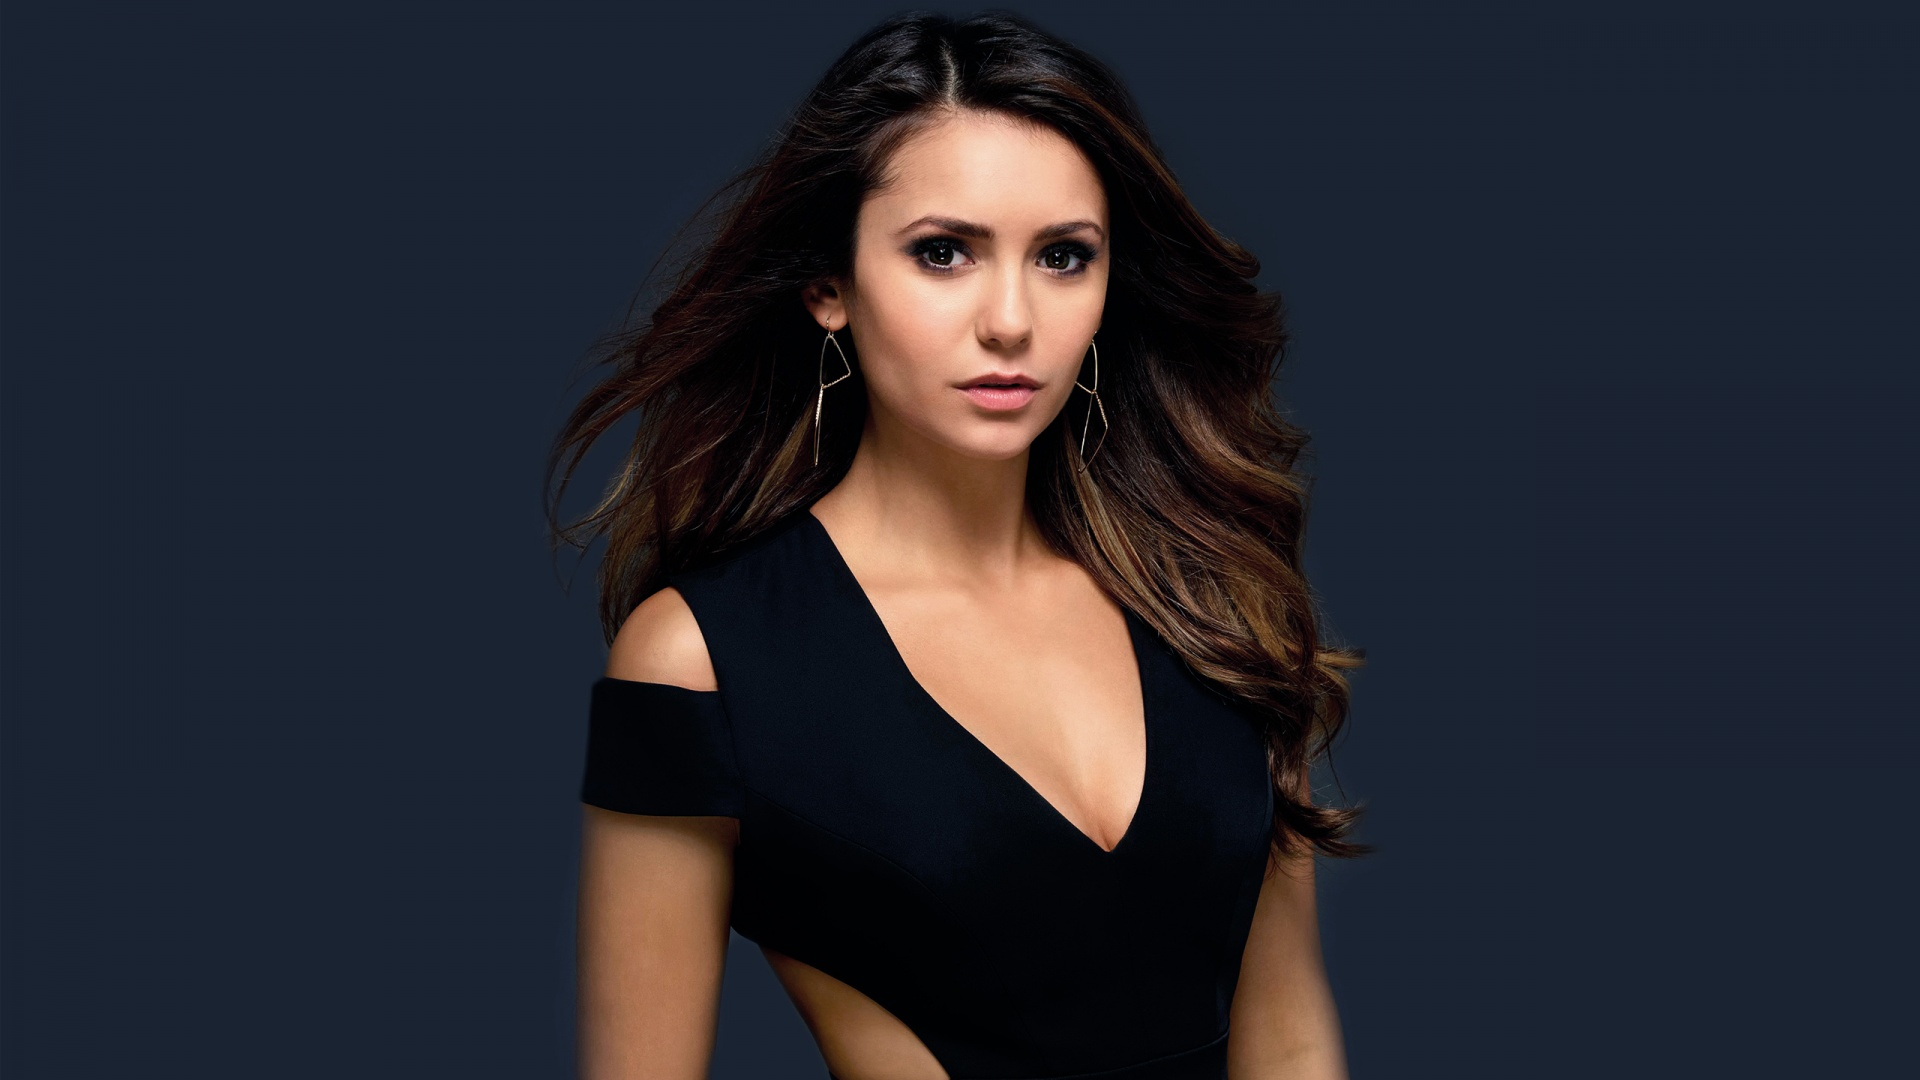 nina dobrev wallpapers hd A3